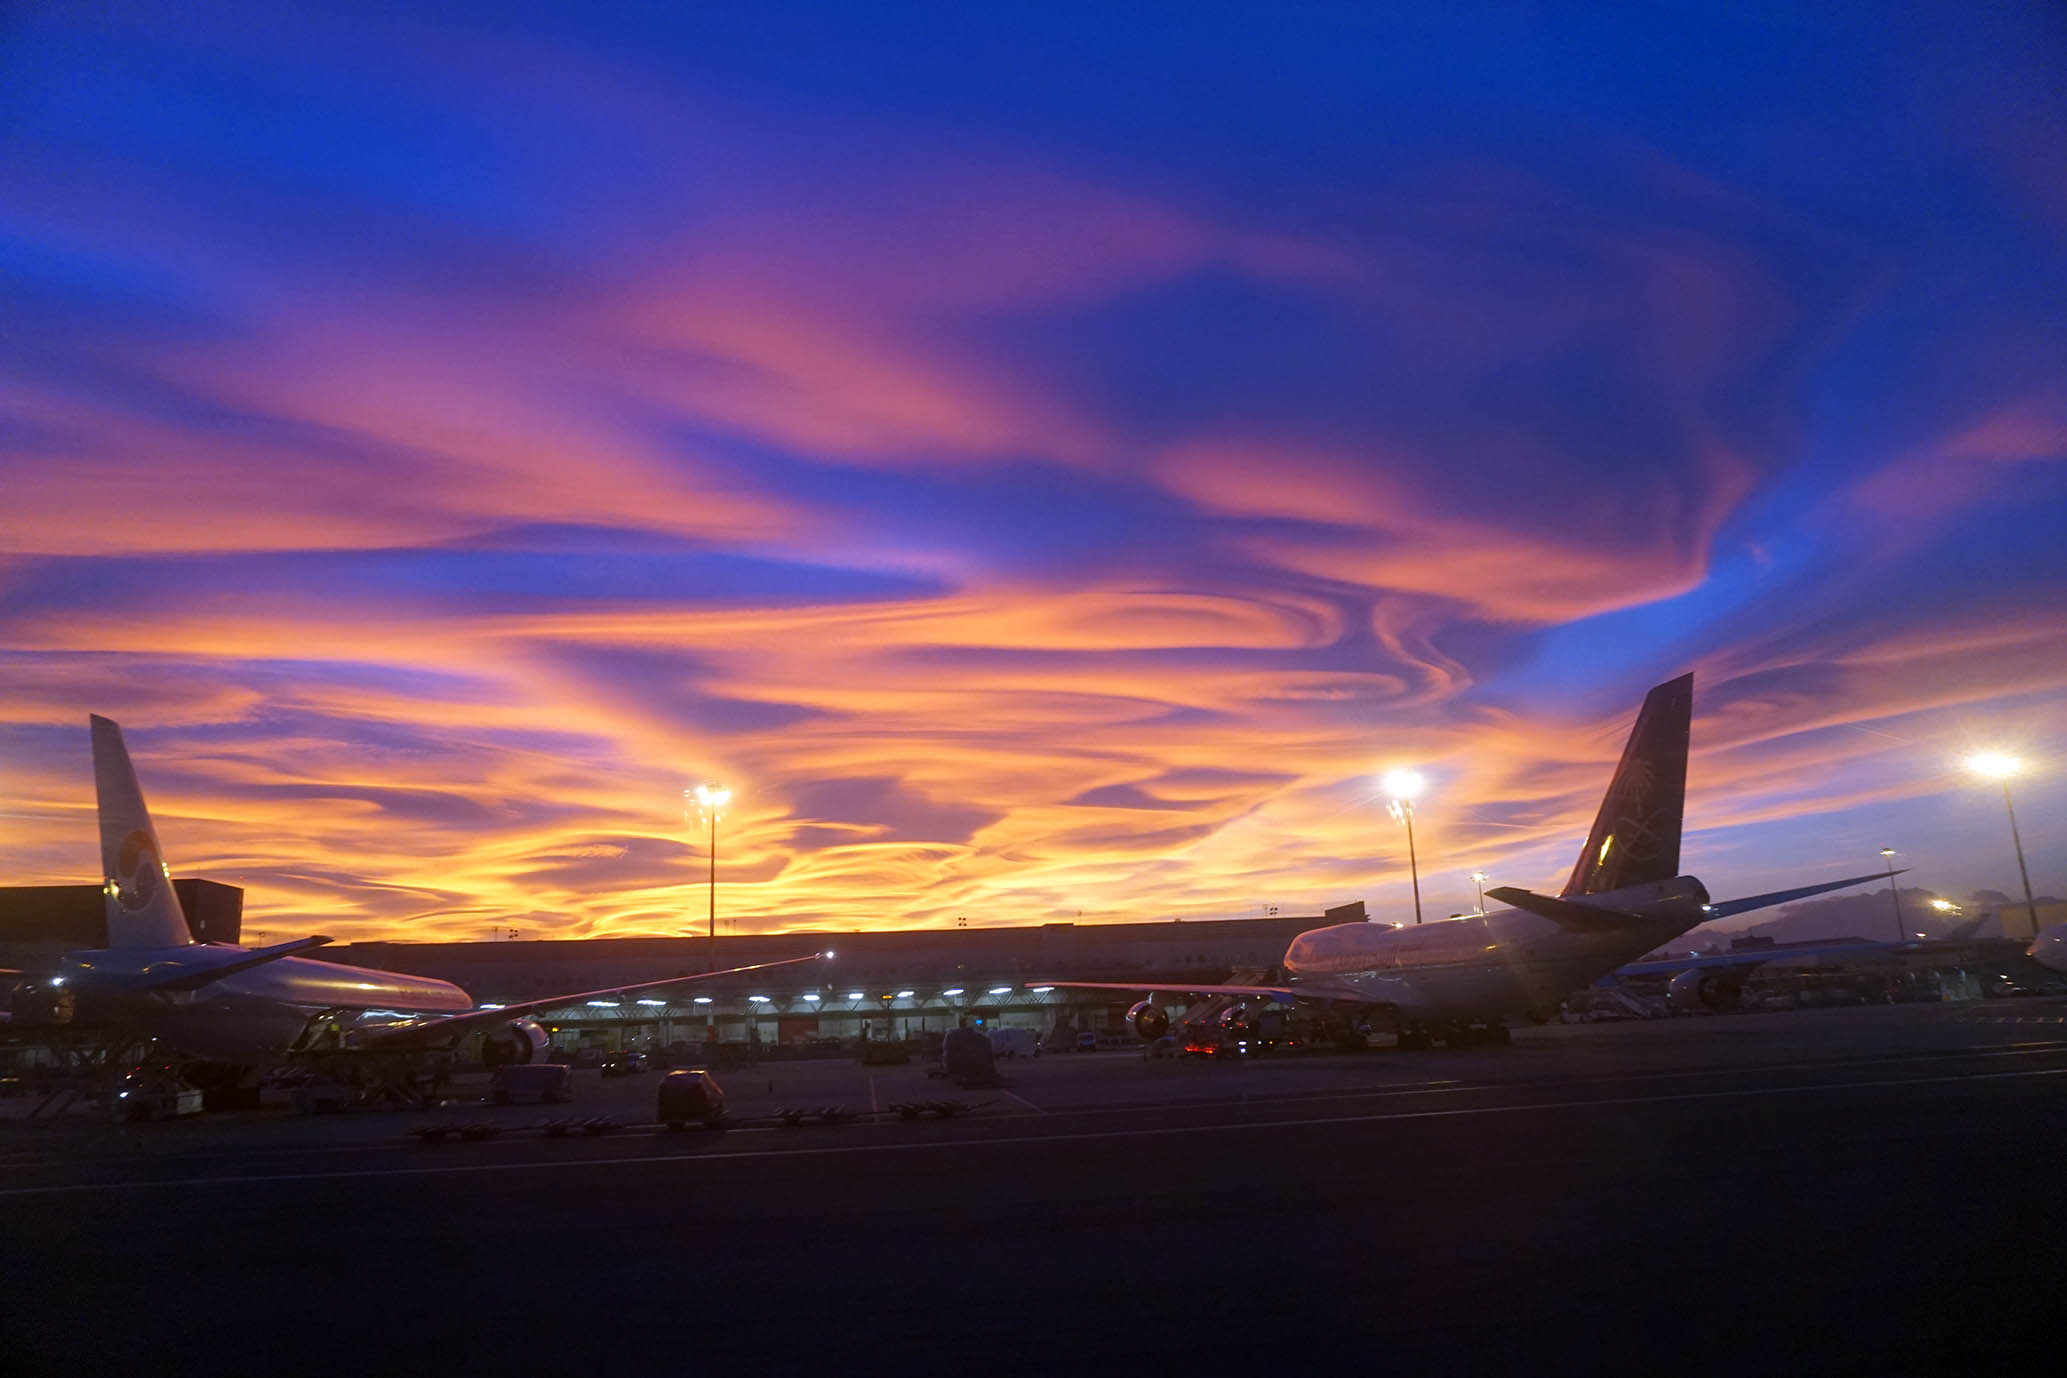 sunset milan airport